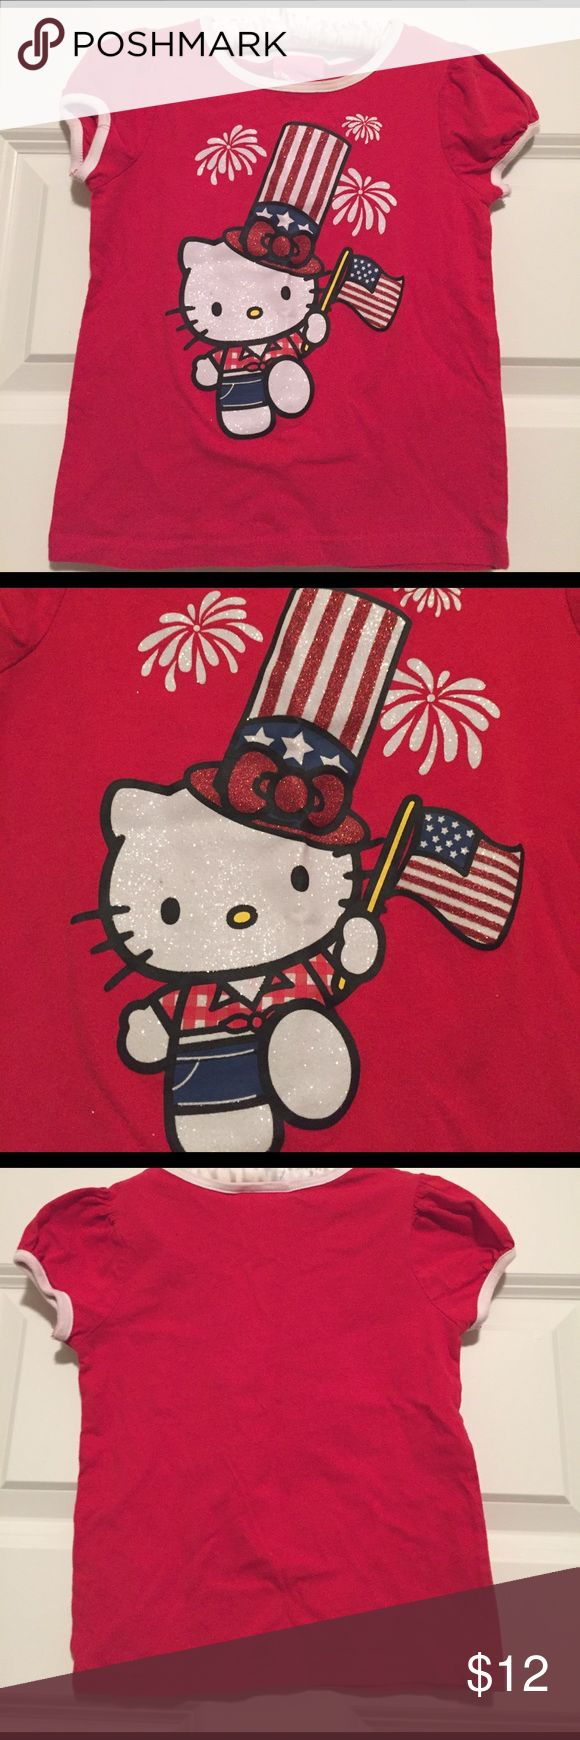 Hello Kitty July 4th Tee Hello Kitty July 4th tee with glitter appliqué. Name in sharpie on tag. Hello Kitty Shirts & Tops Tees - Short Sleeve